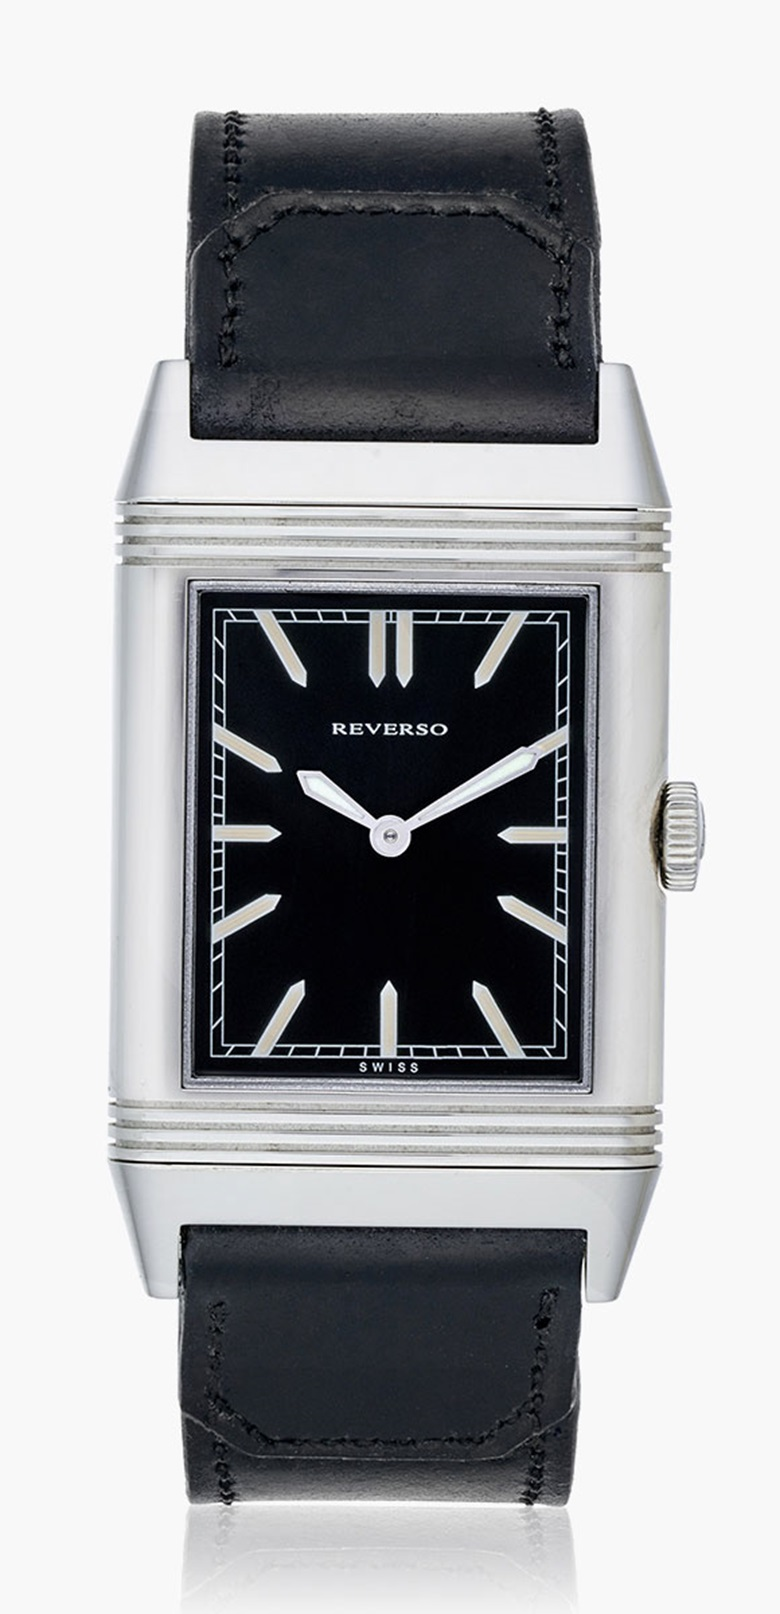 Jaeger-Lecoultre New York City skyline reverse. Estimate $6,000-9,000. This lot is offered in Christie's Watches Online Time for the Holidays, 23 November–7 December 2016, Online